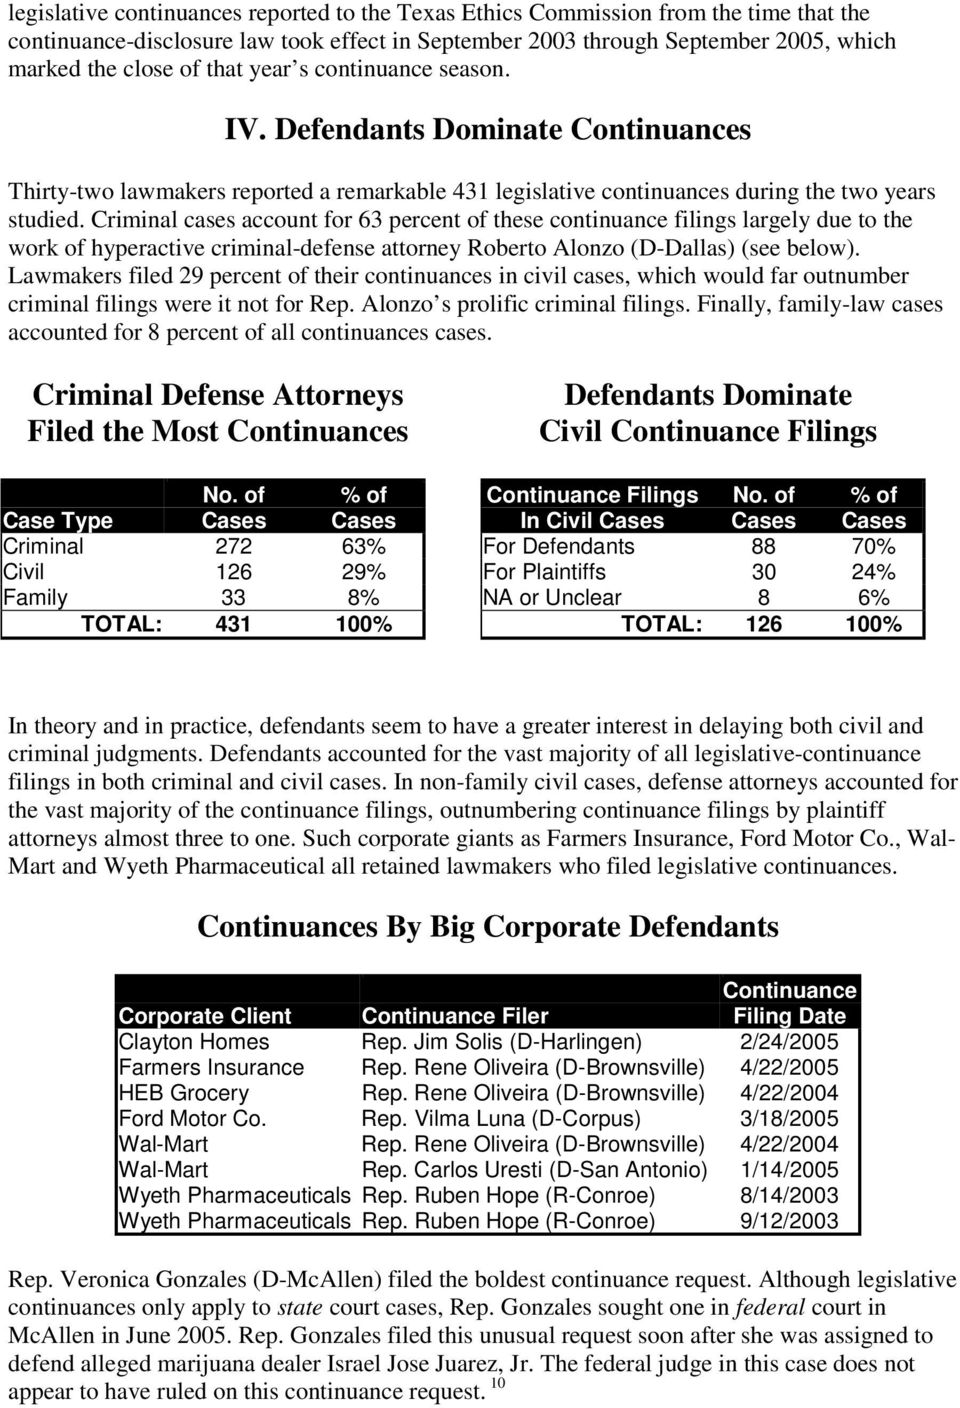 Criminal cases account for 63 percent of these continuance filings largely due to the work of hyperactive criminal-defense attorney Roberto Alonzo (D-Dallas) (see below).